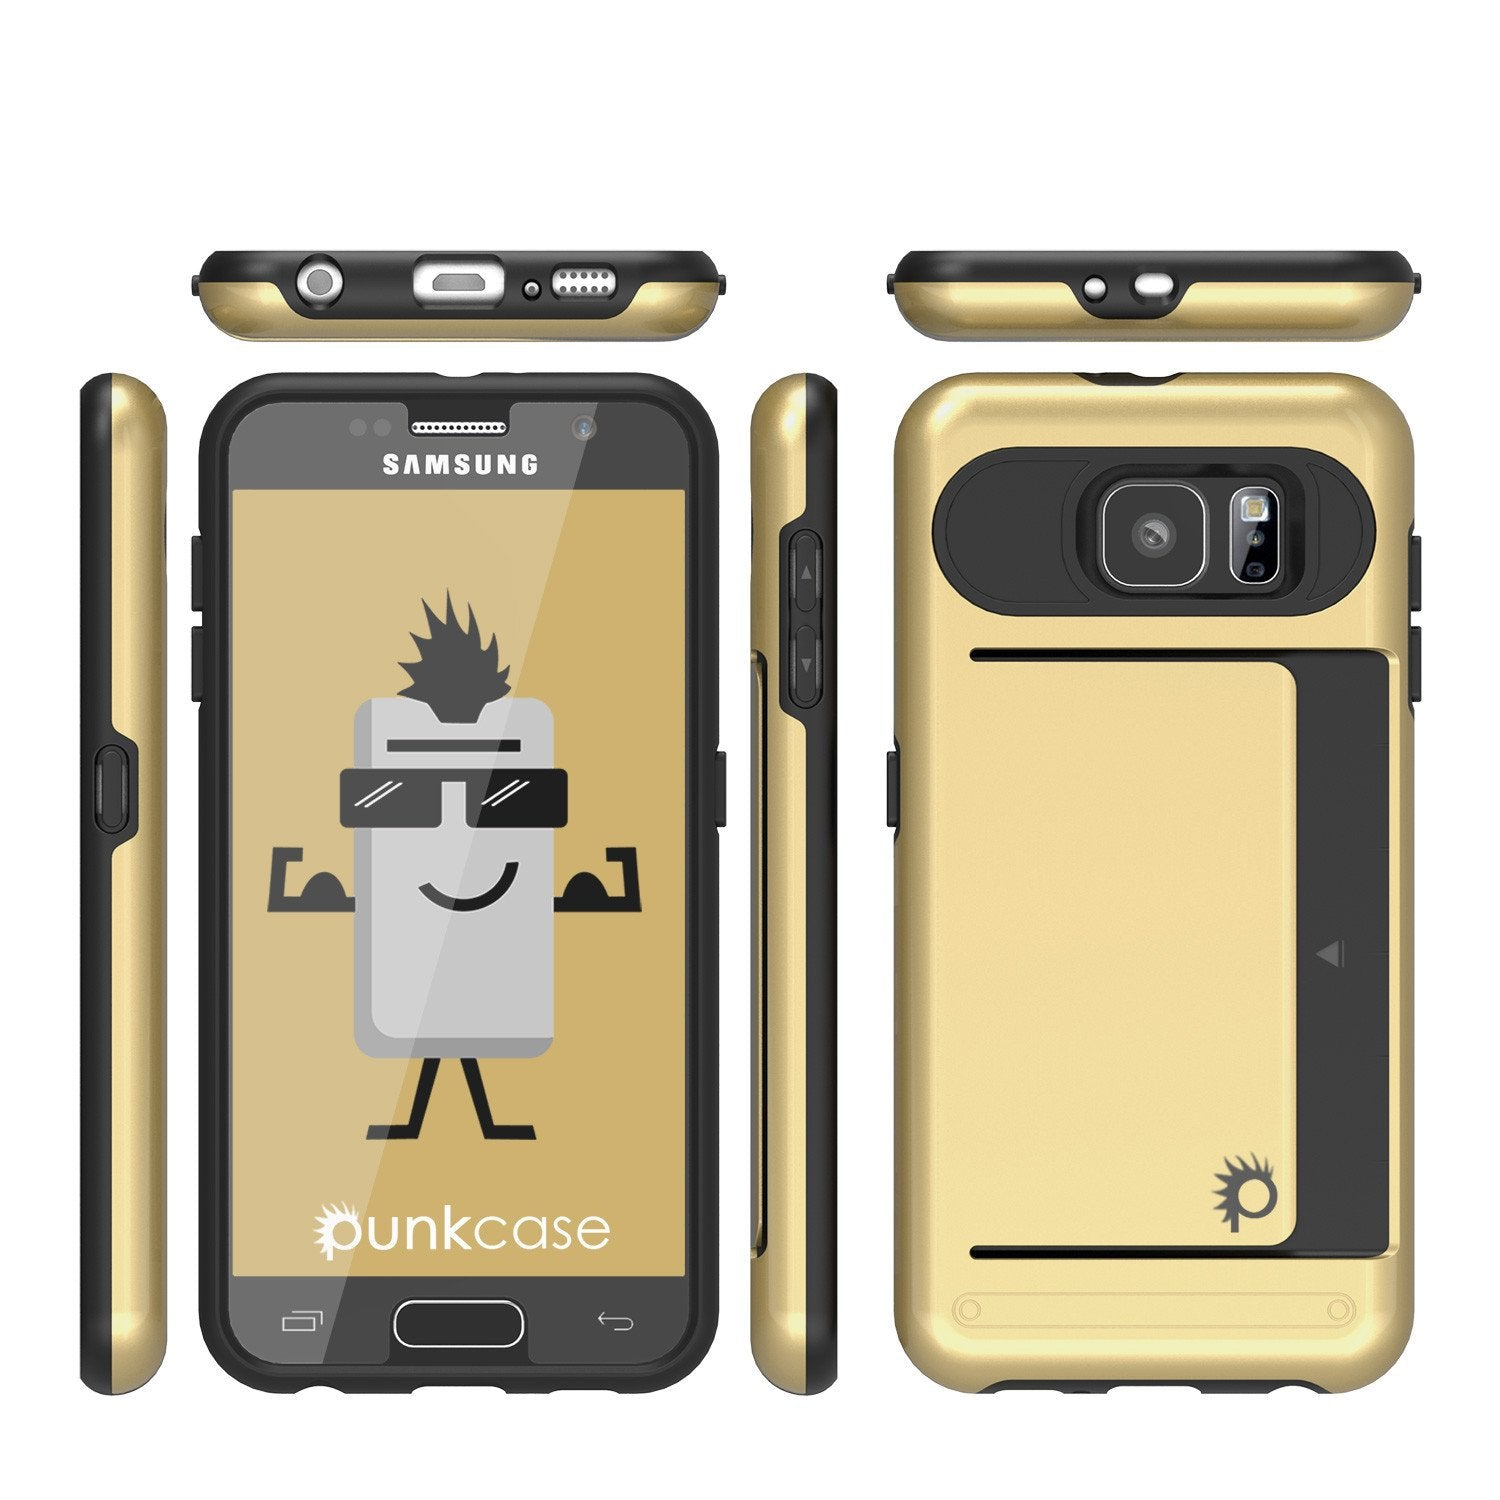 Galaxy S6 EDGE Plus Case PunkCase CLUTCH Gold Series Slim Armor Soft Cover w/ Screen Protector